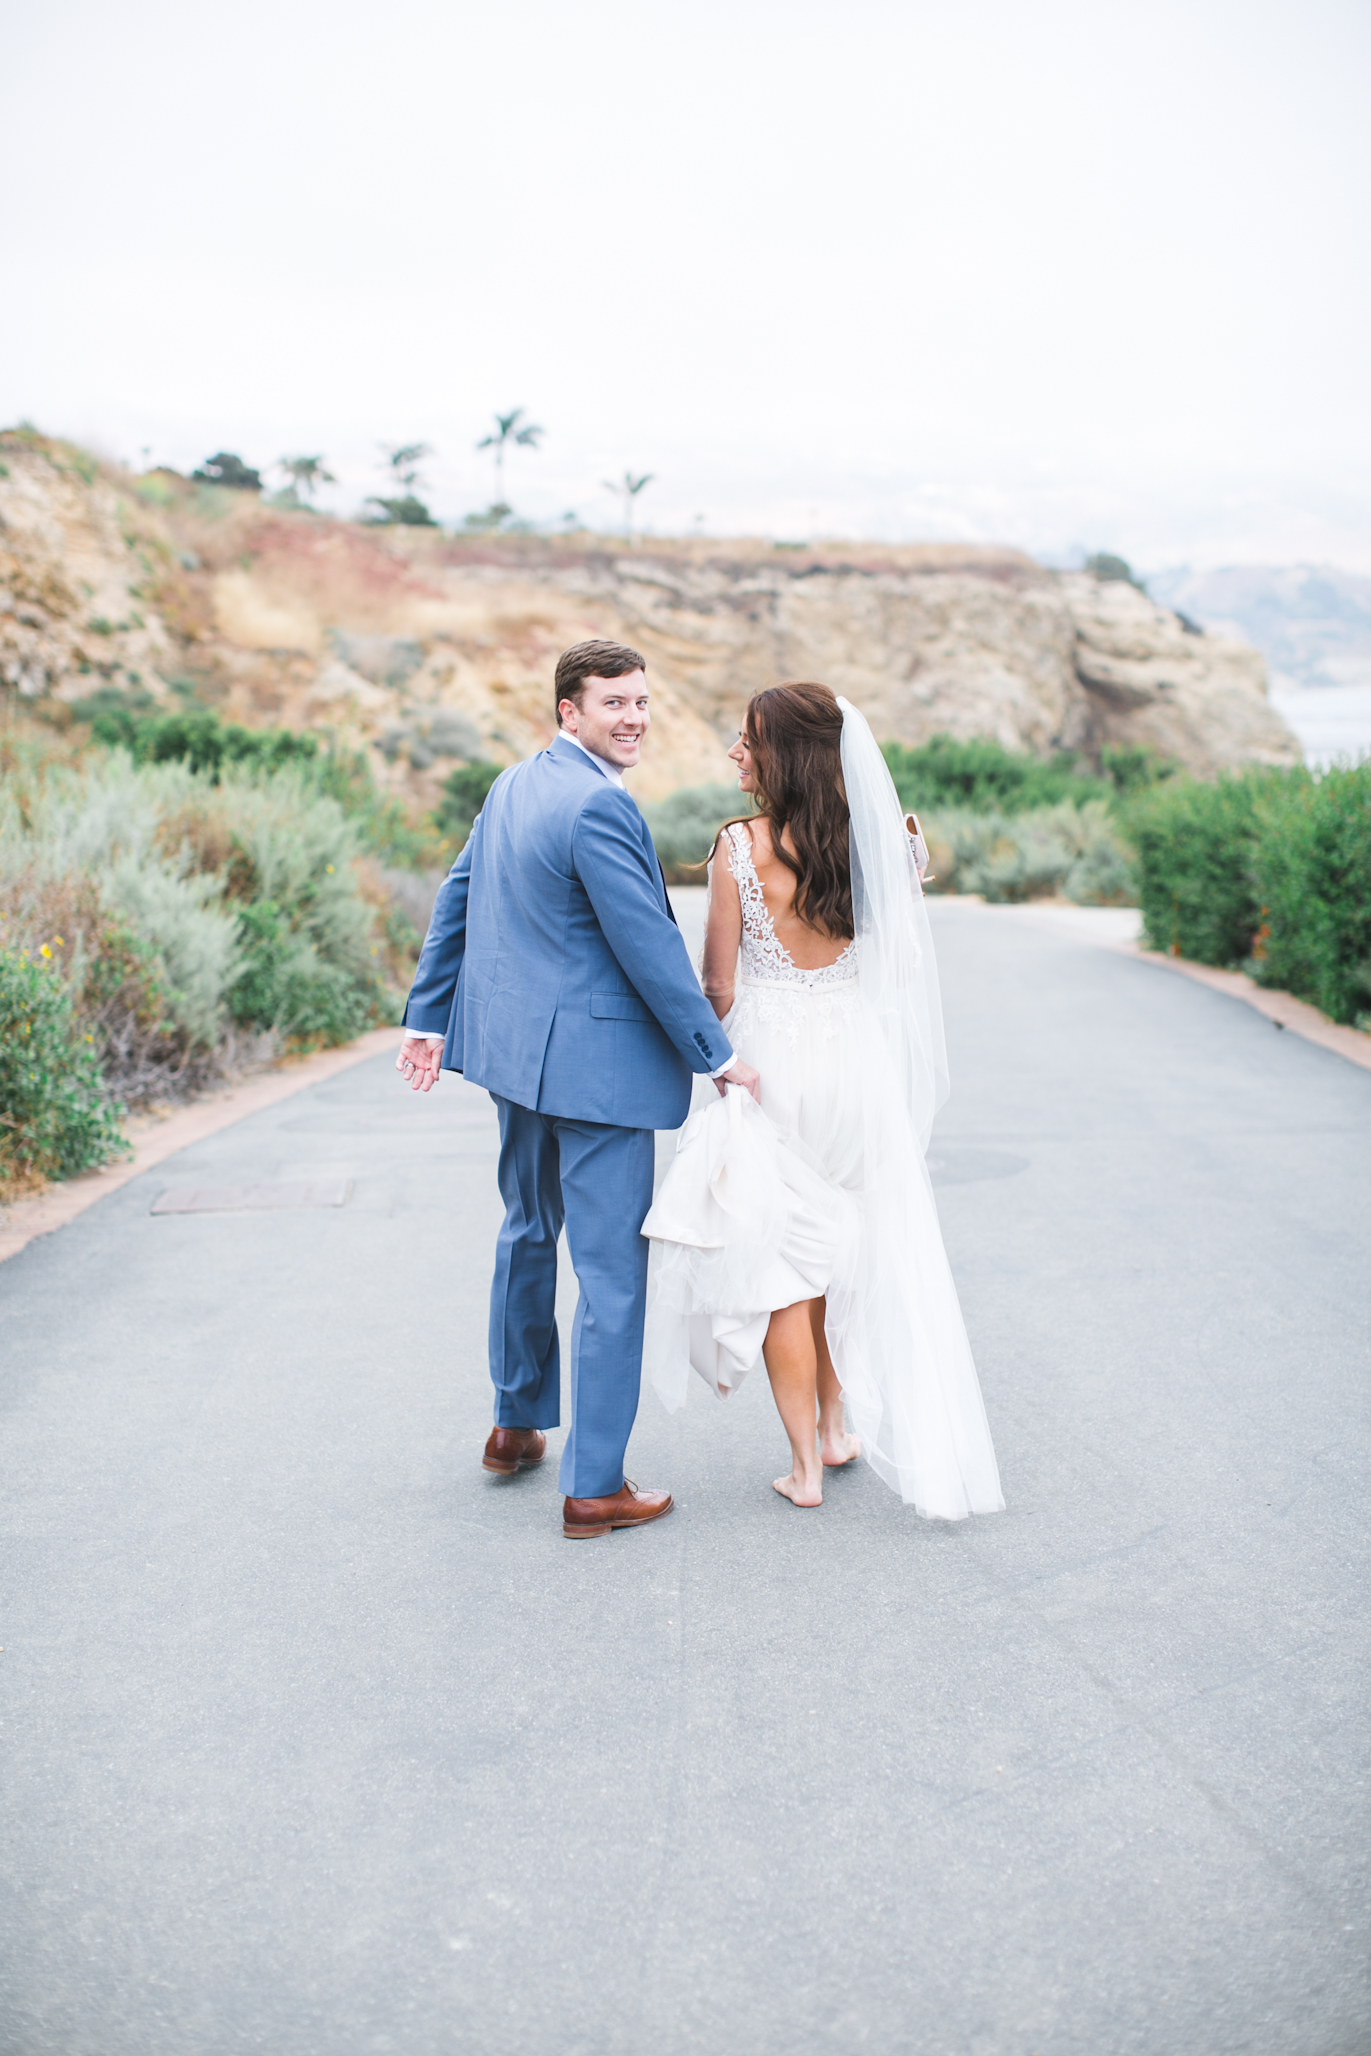 During cocktail hour, I stole the bride and groom for a more intimate couple session down towards Terranea Cove. Love taking couples to this spot!